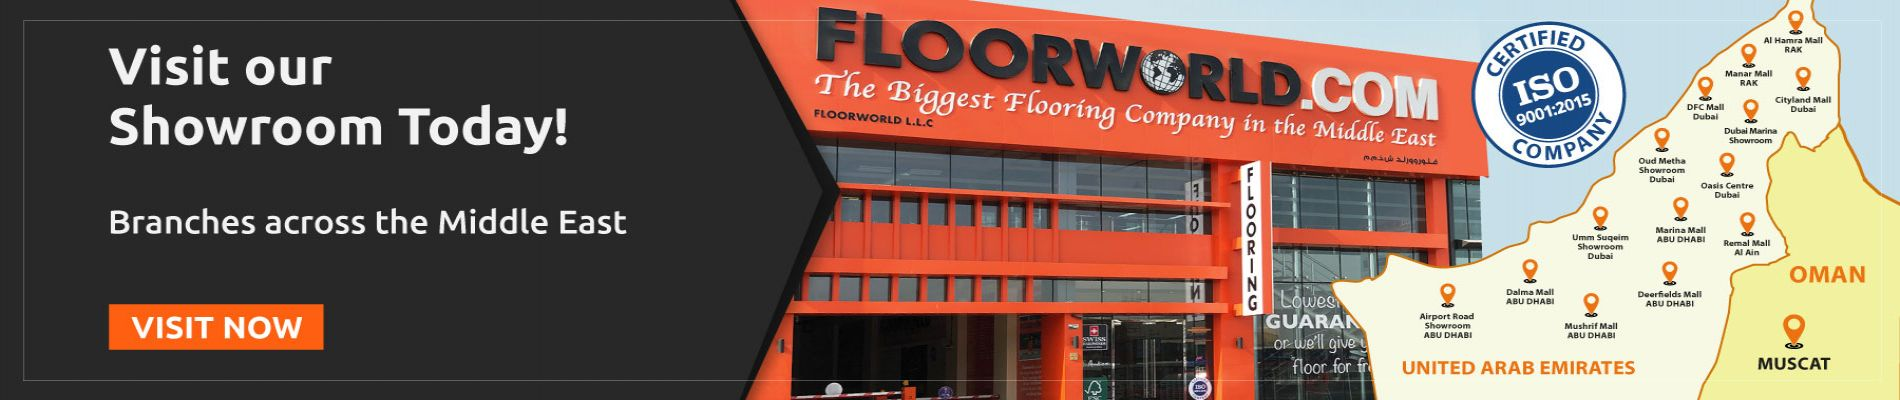 https://www.floorworld.com/en/our-stores